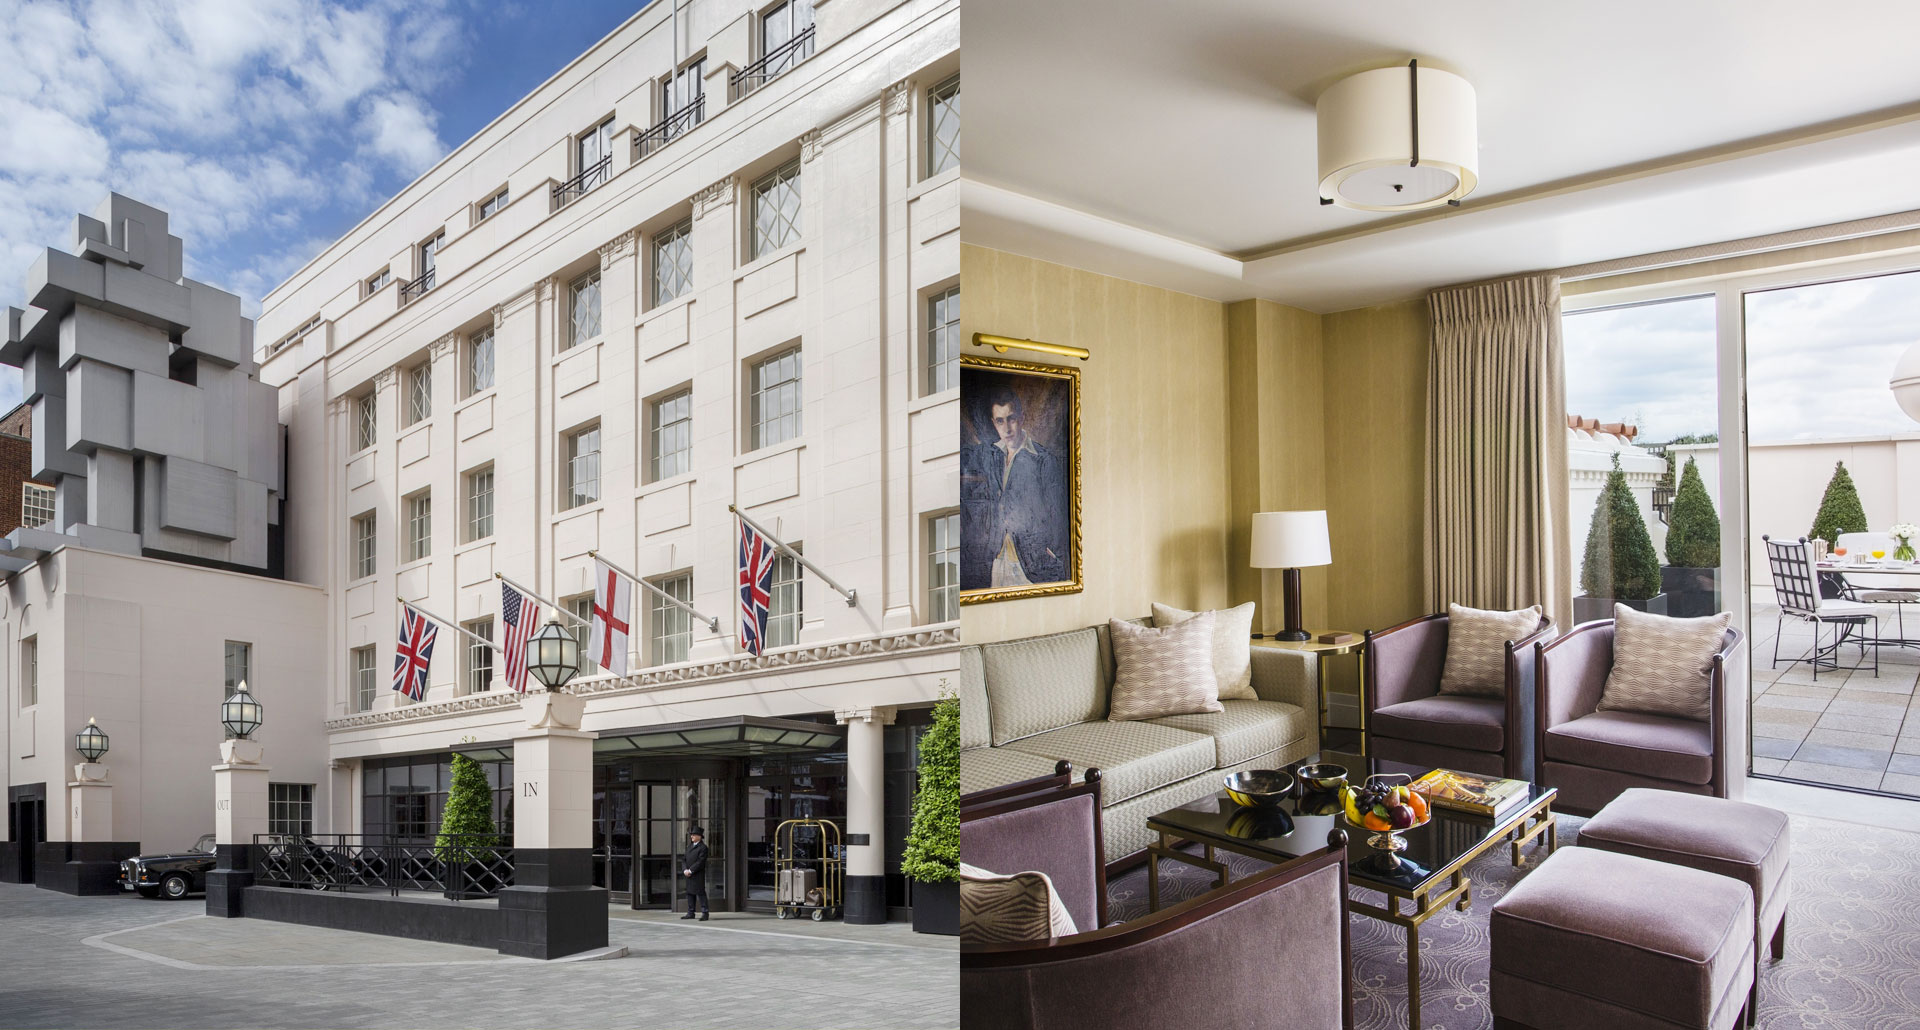 The Beaumont Hotel - romantic boutique hotel in London, England